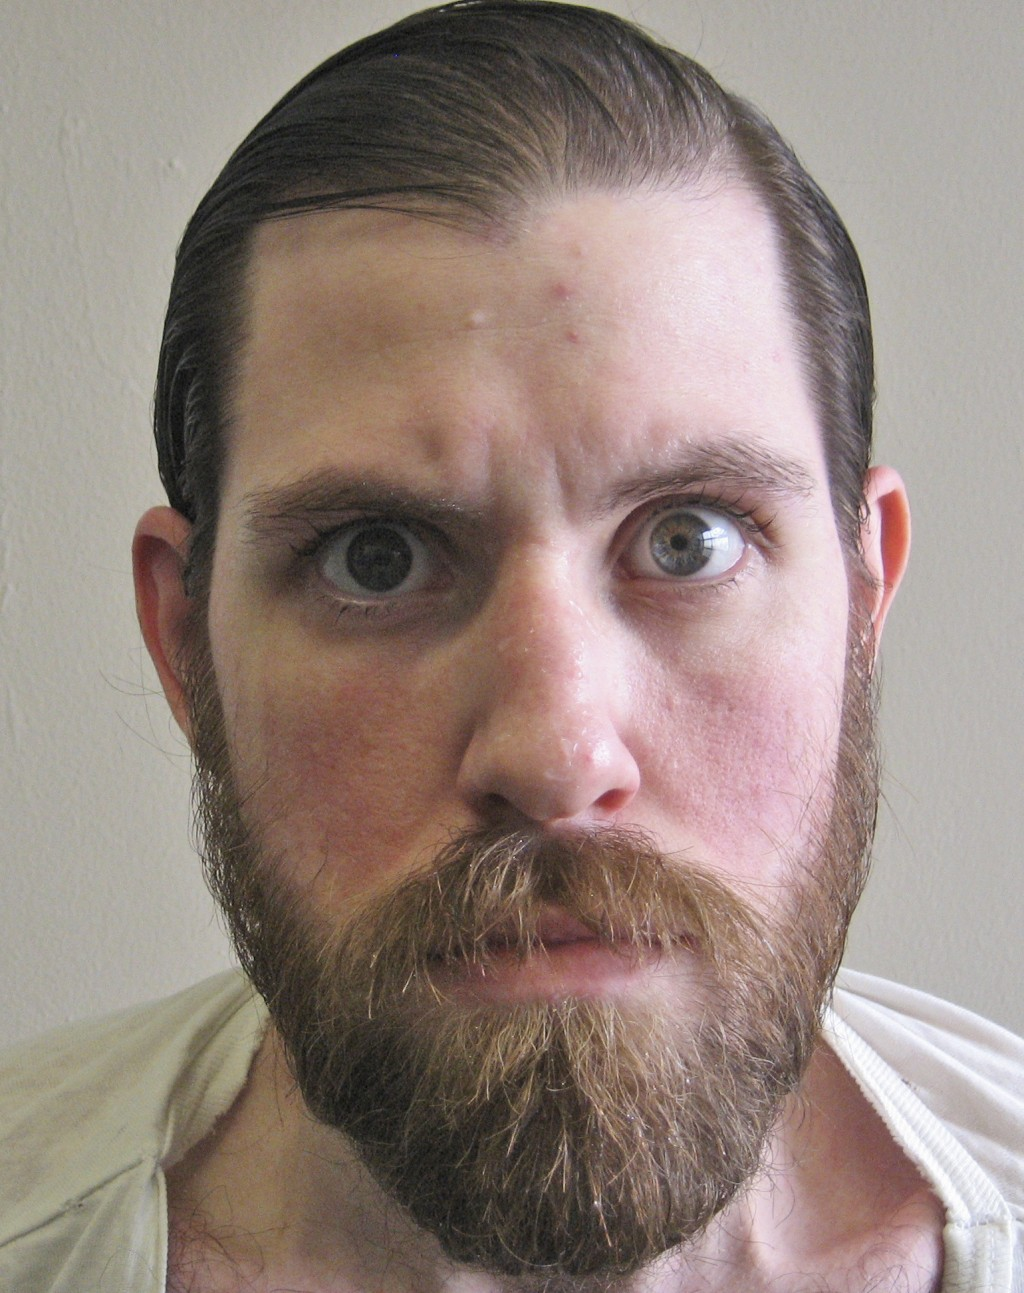 FILE - This undated file photo provided by the Virginia Department of Corrections shows convicted murderer William Morva, at the Greenville Correction...